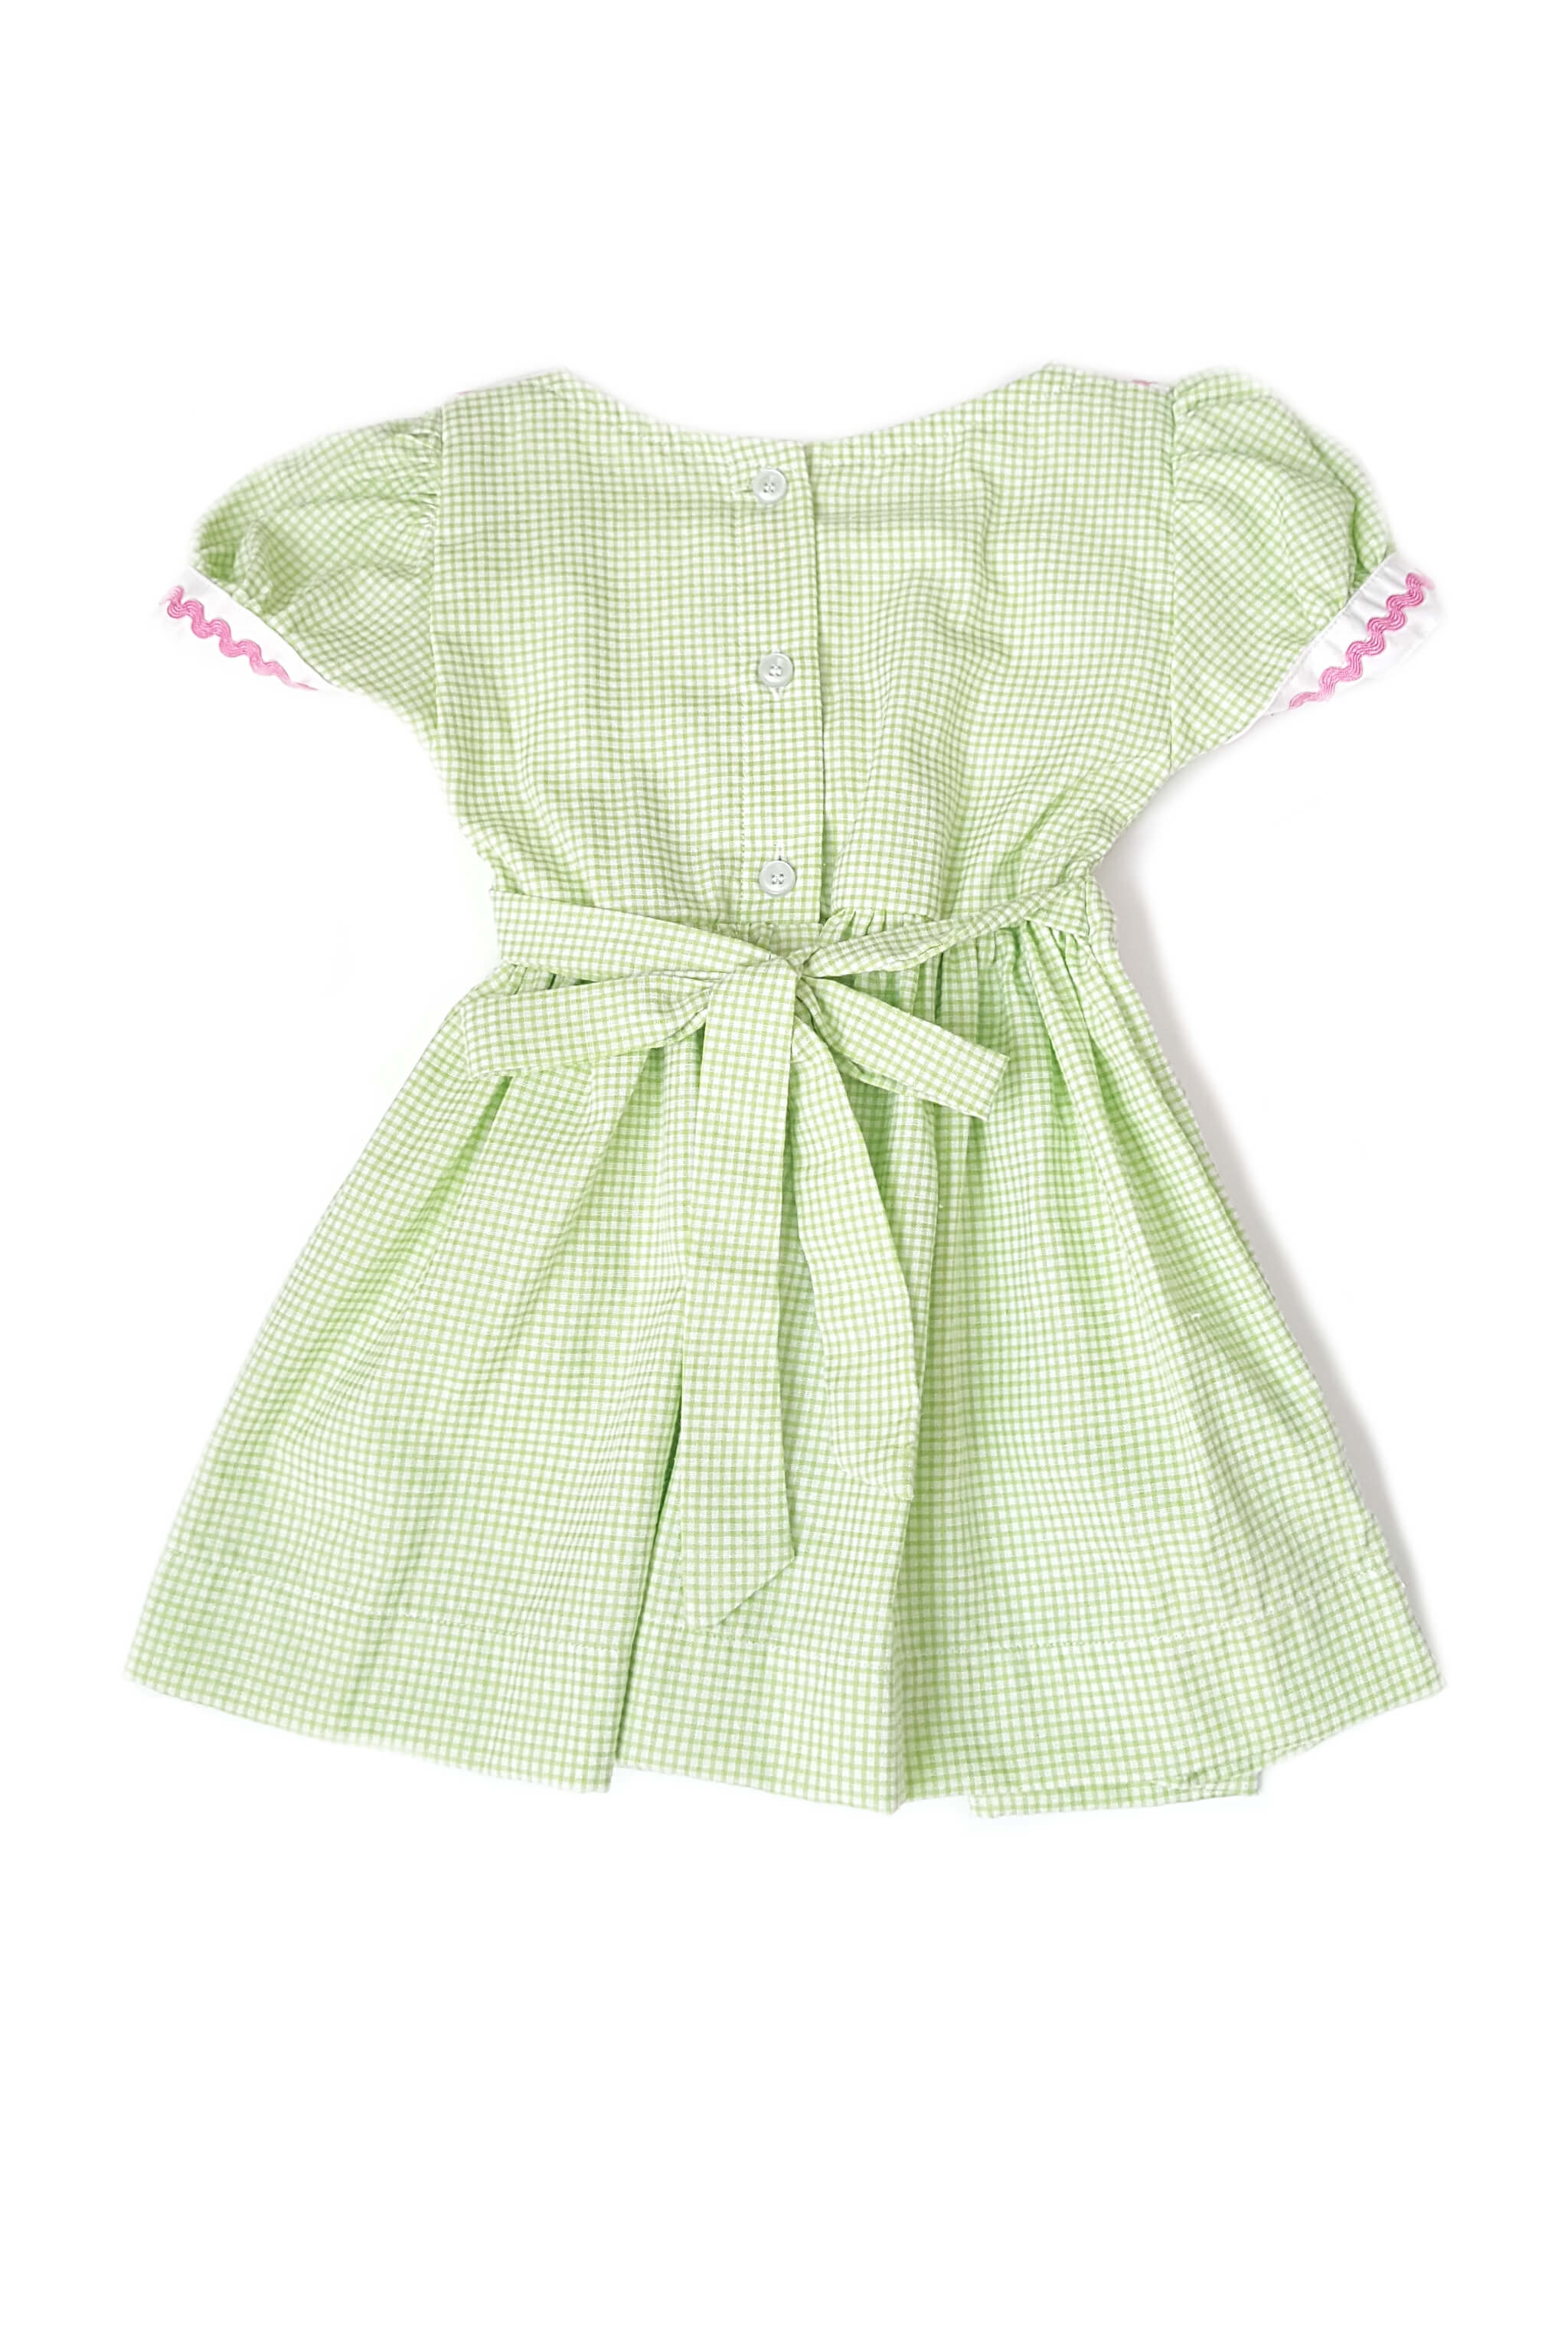 Back of sage green dress with hand-smocked bodice and contrasting white sailor collar and sash for little girls